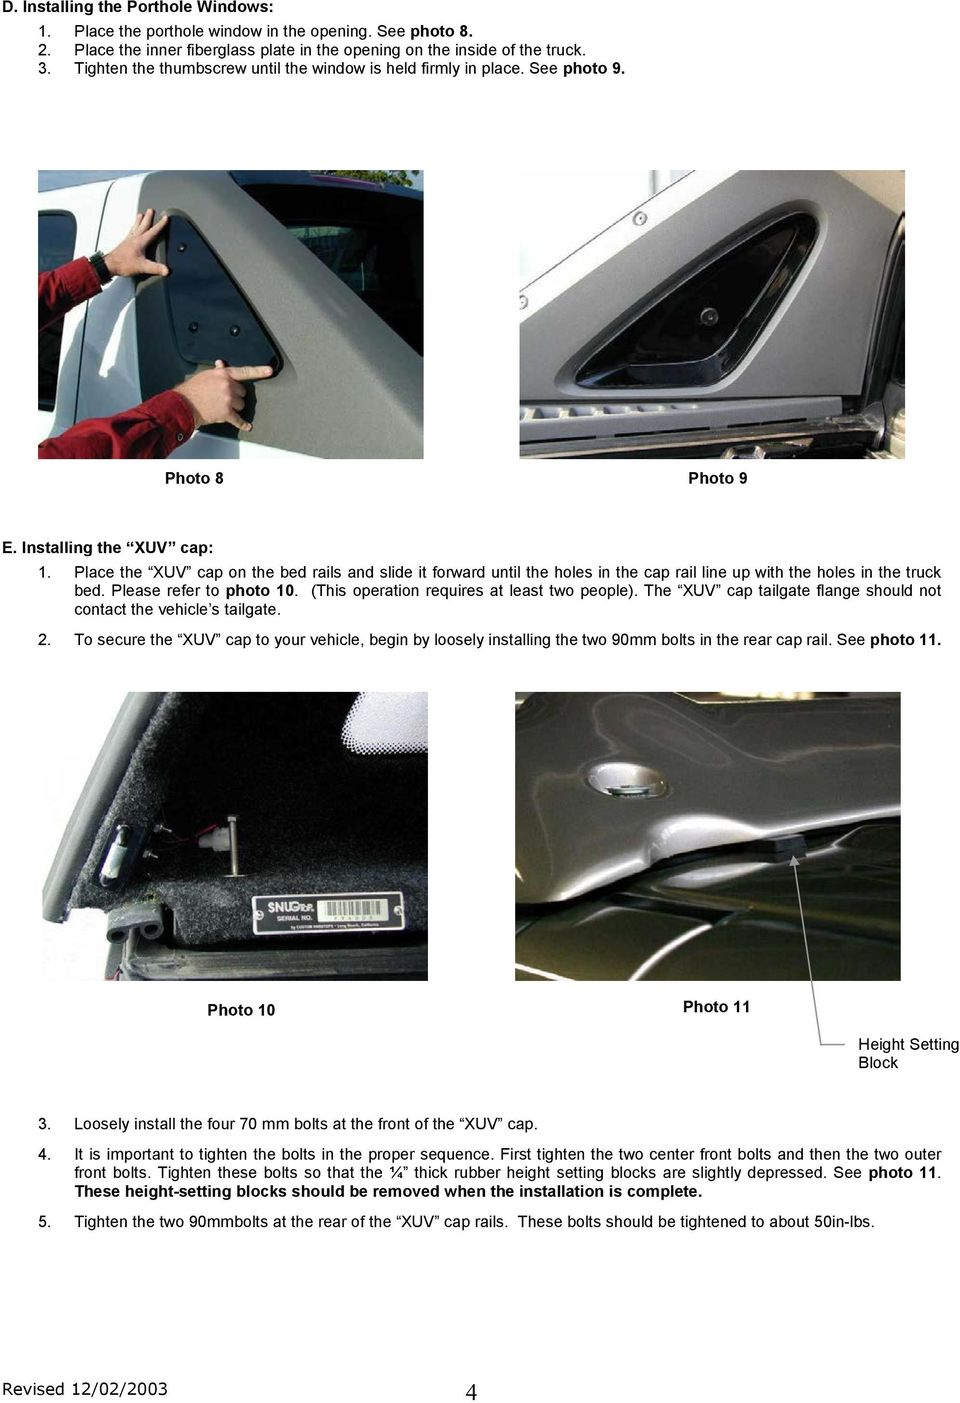 Place the XUV cap on the bed rails and slide it forward until the holes in the cap rail line up with the holes in the truck bed. Please refer to photo 10.